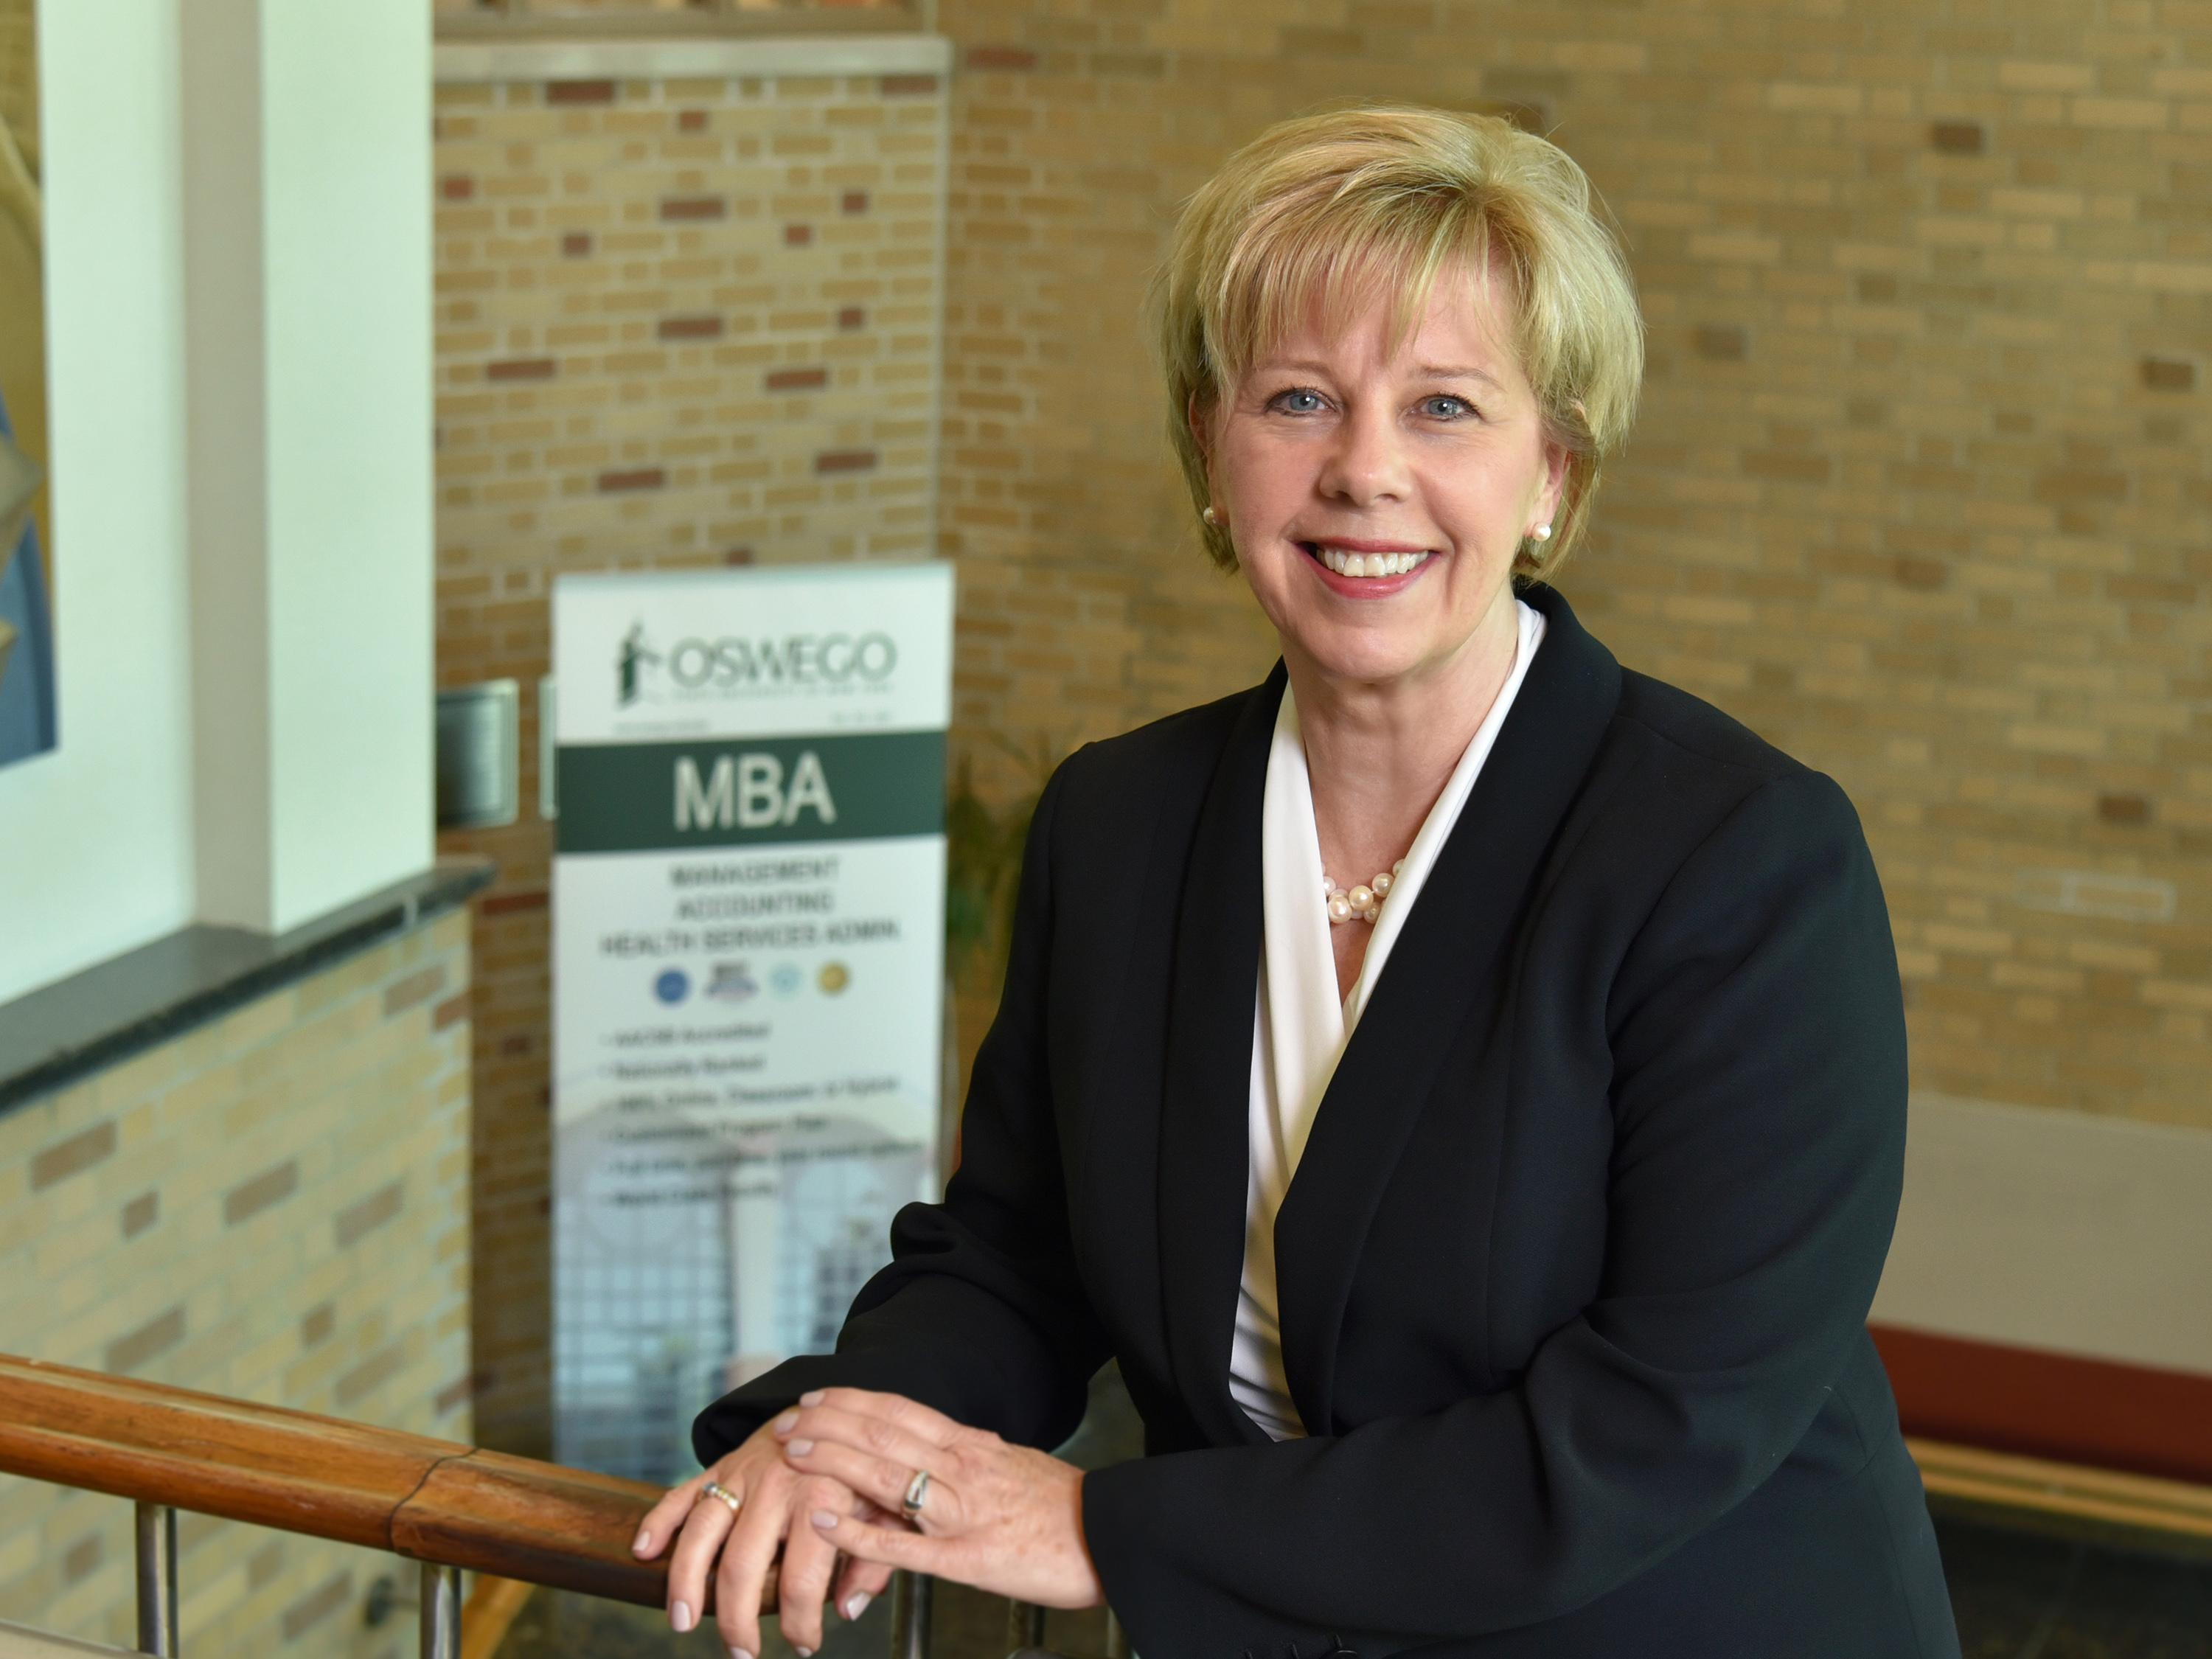 Irene Scruton, winner of a SUNY Chancellor's Award for Excellence in Professional Service